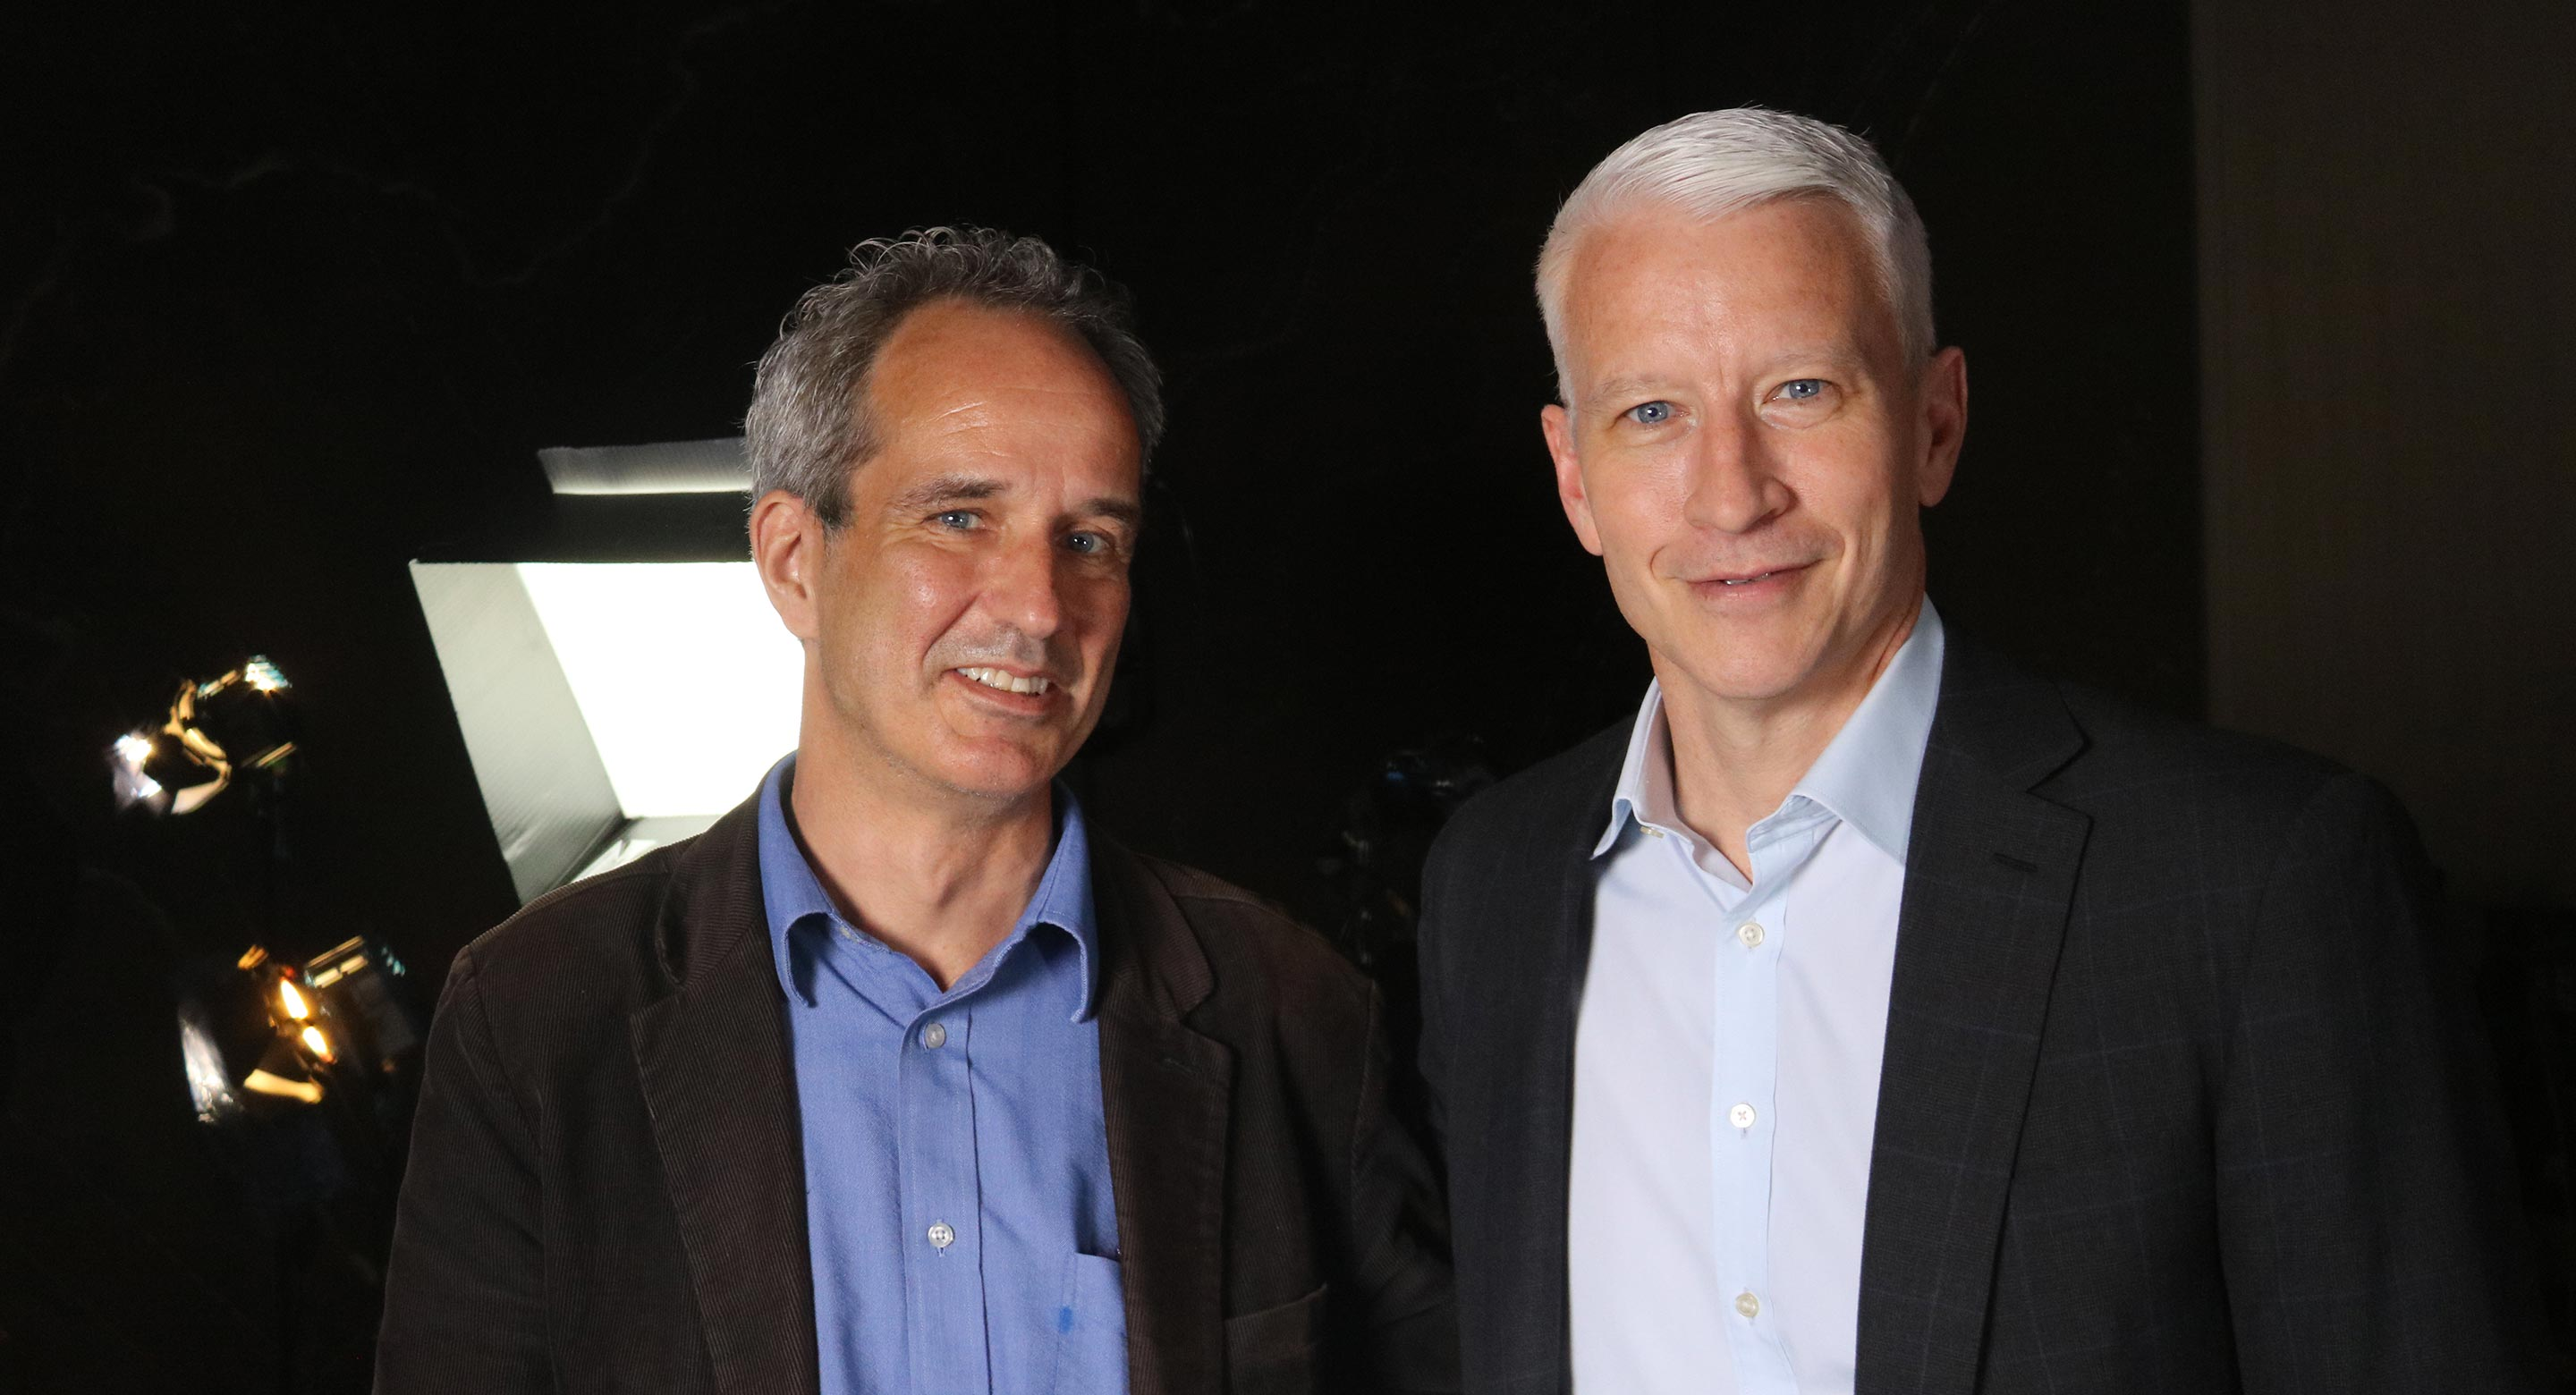 CAMH Senior Media Relations Specialist Sean O'Malley and Anderson Cooper